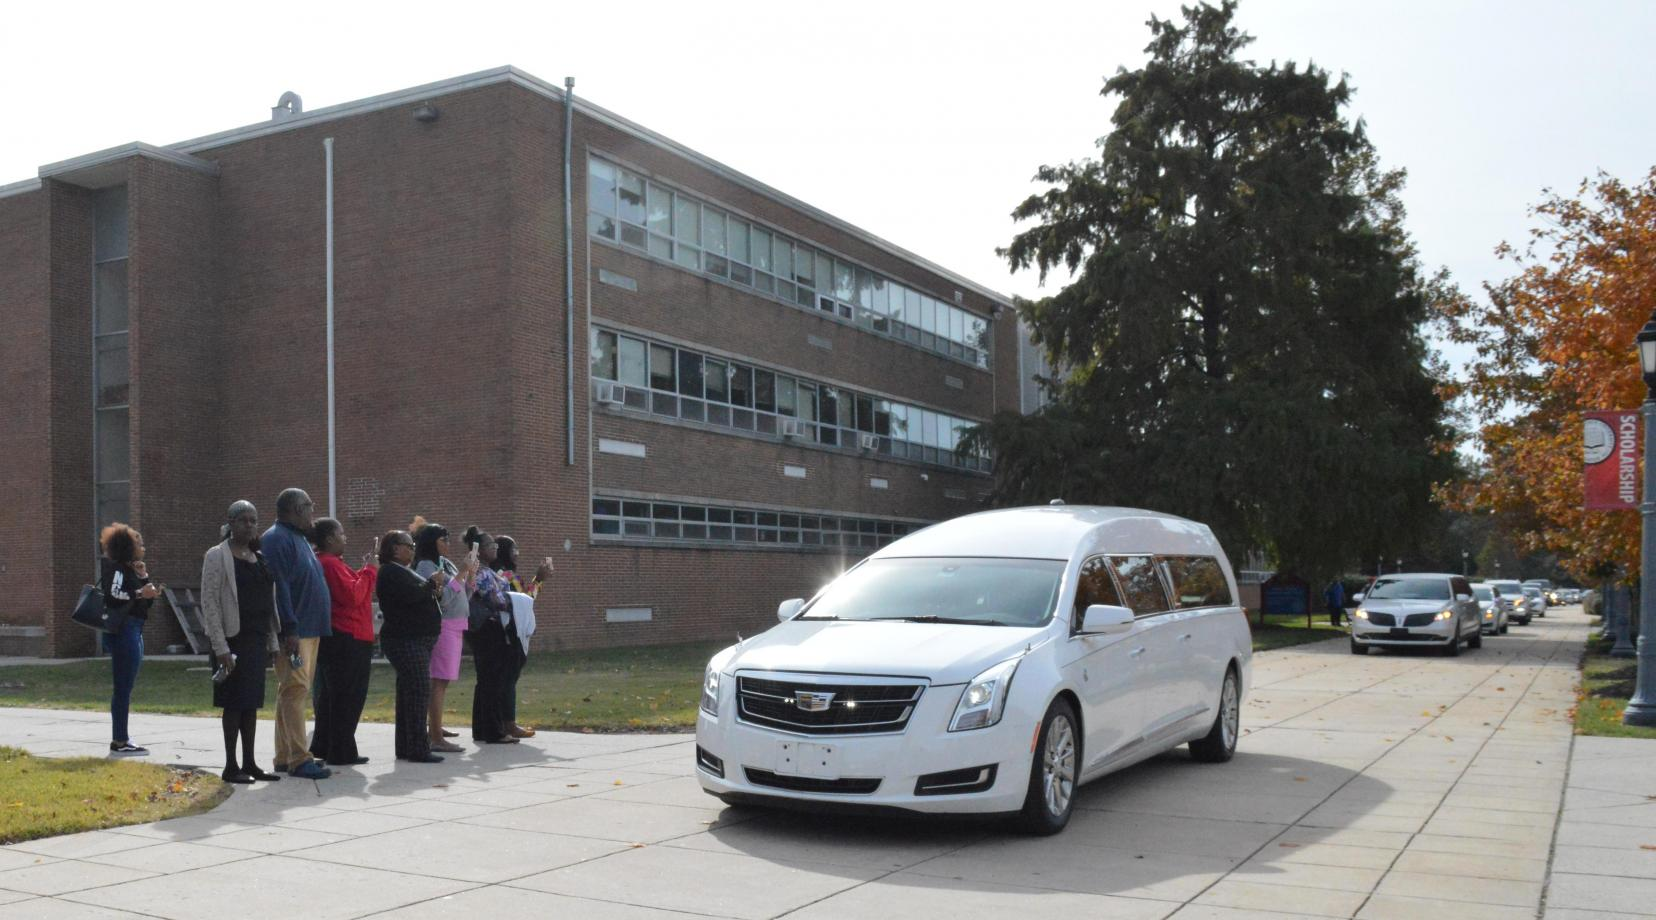 The hearse carrying the body of Dr. Ulysses S. Washington take the former longtime head of the Department of Agriculture and Natural Resource a final trip through the campus after the Celebration of Life service held in the Education and Humanities Theatre. Photo by Bernard Carr.